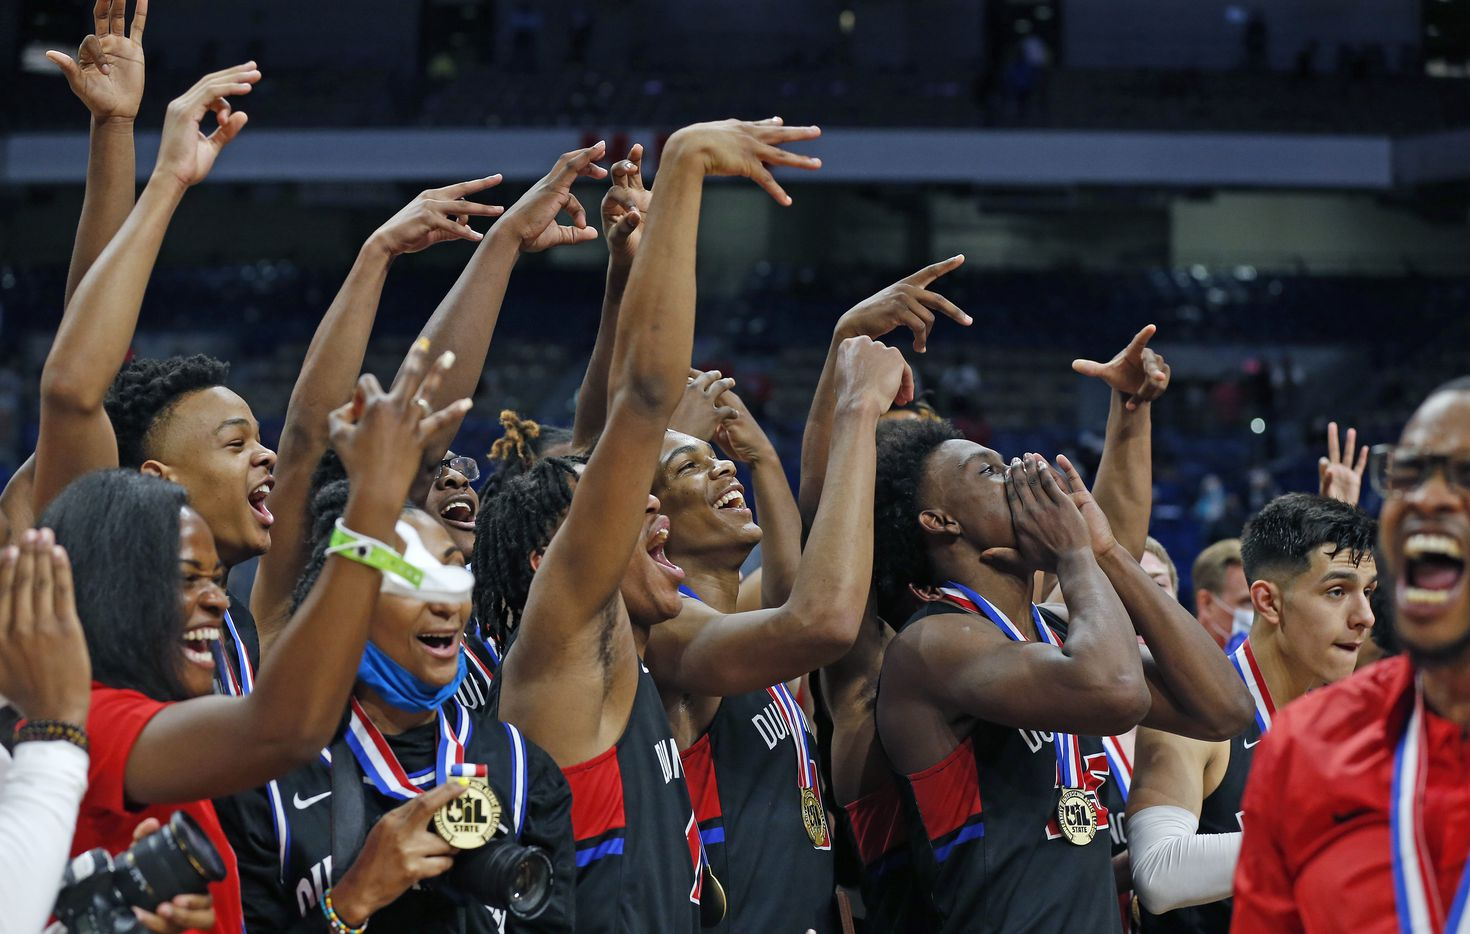 Duncanville celebrates after the game. UIL boys Class 6A basketball state championship game between Duncanville and Austin Westlake on Saturday, March 13, 2021 at the Alamodome.